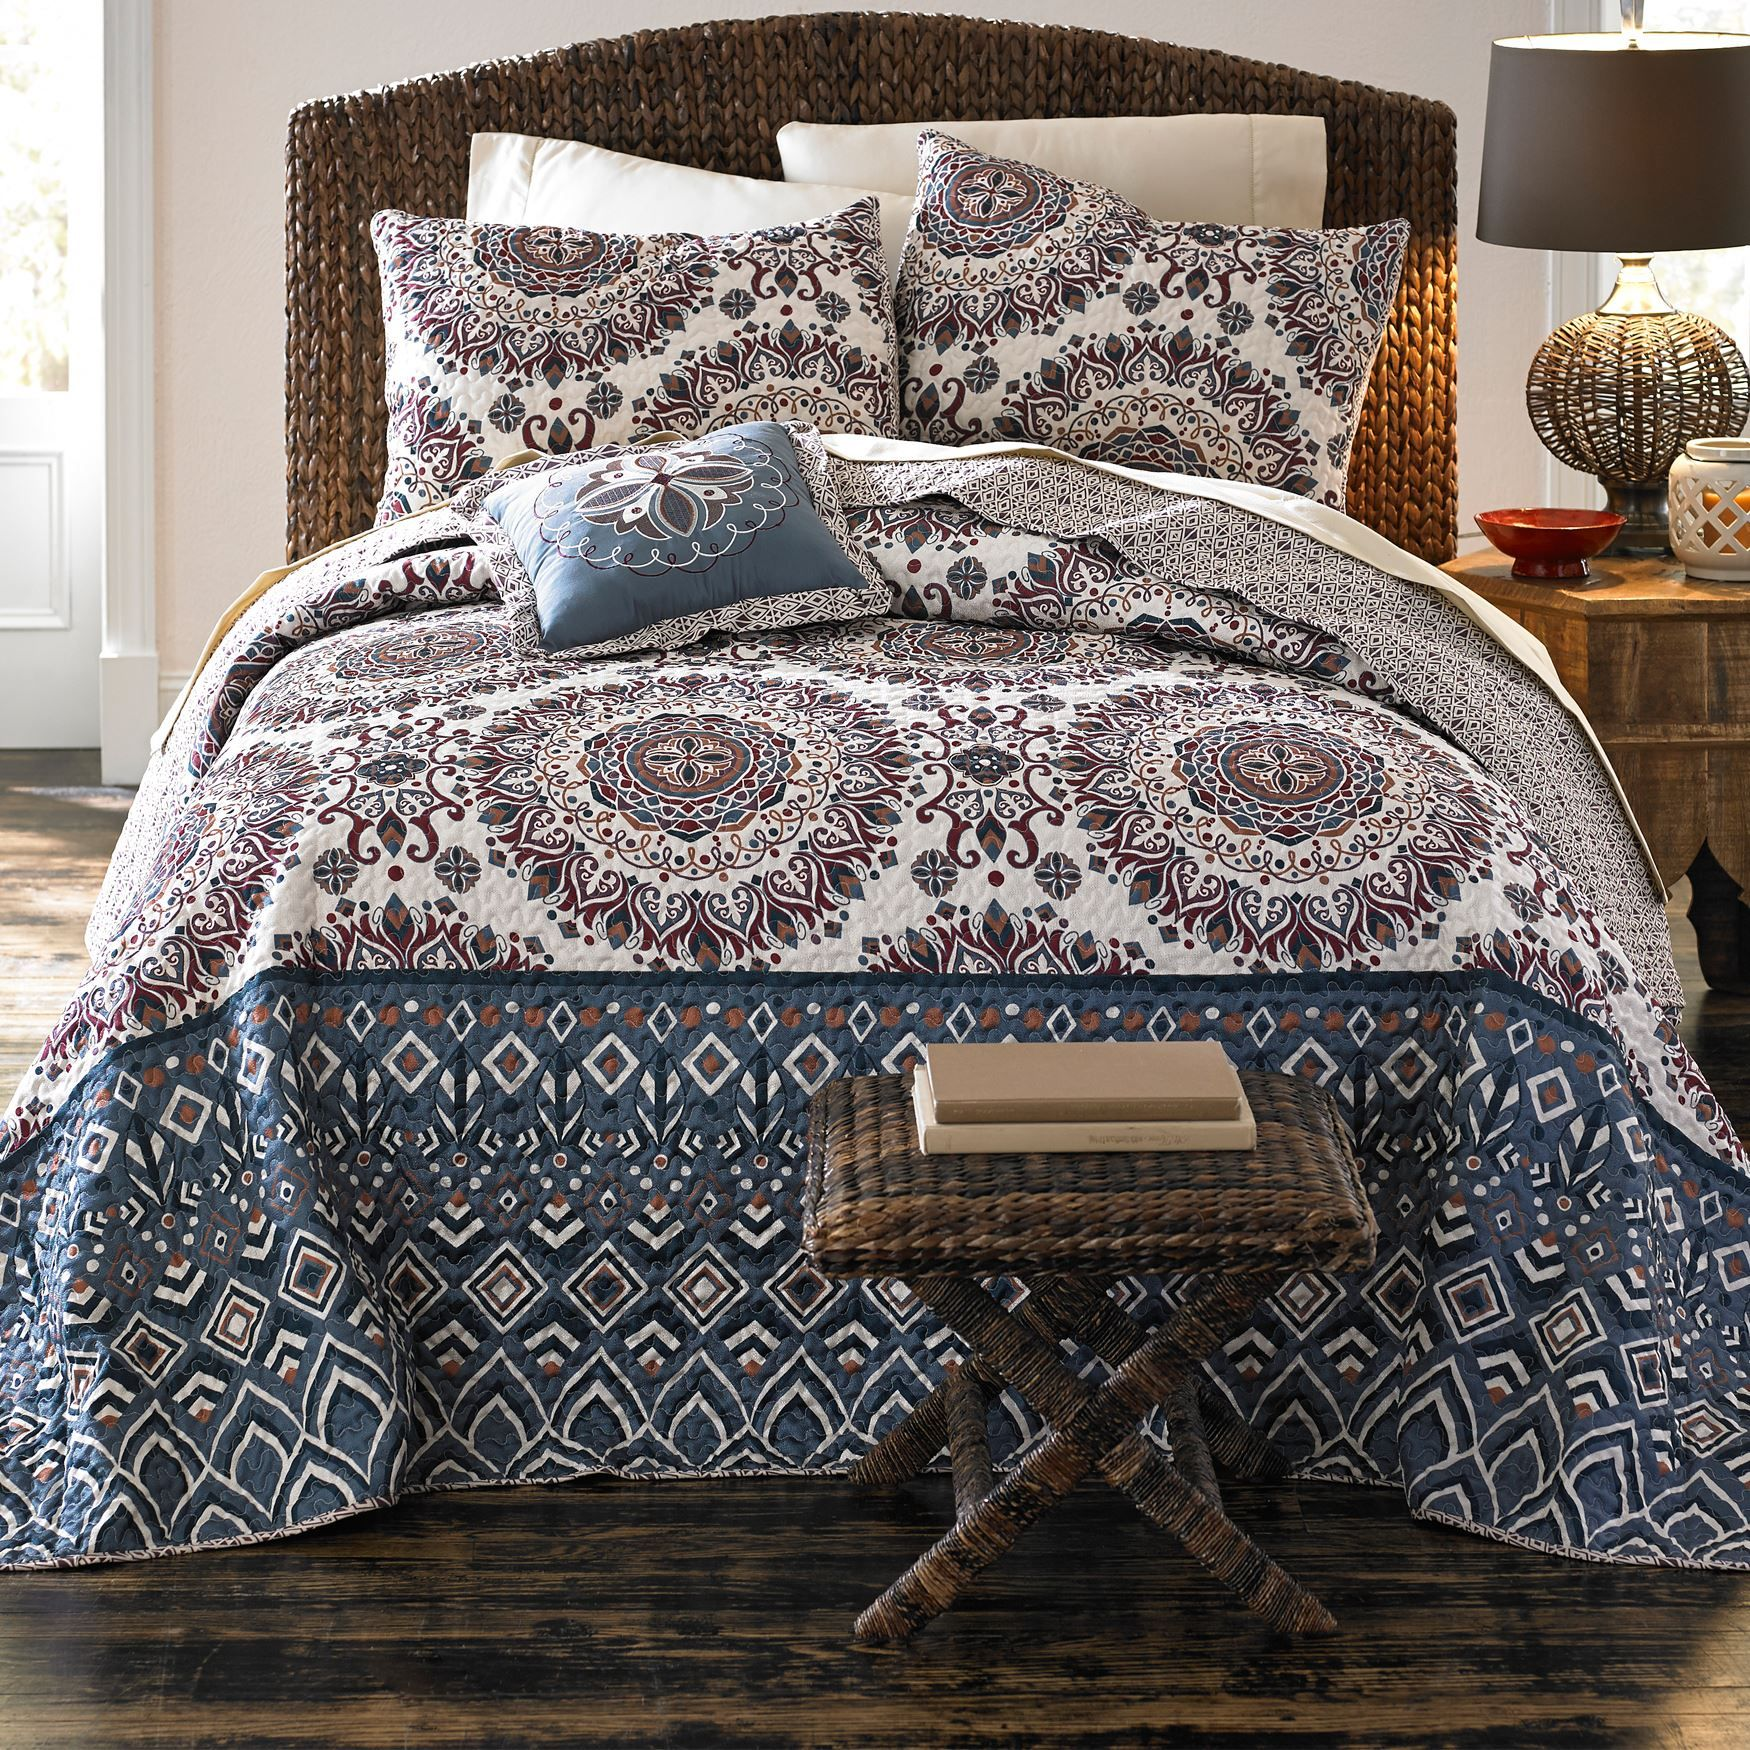 Morocco Bedspread Collection